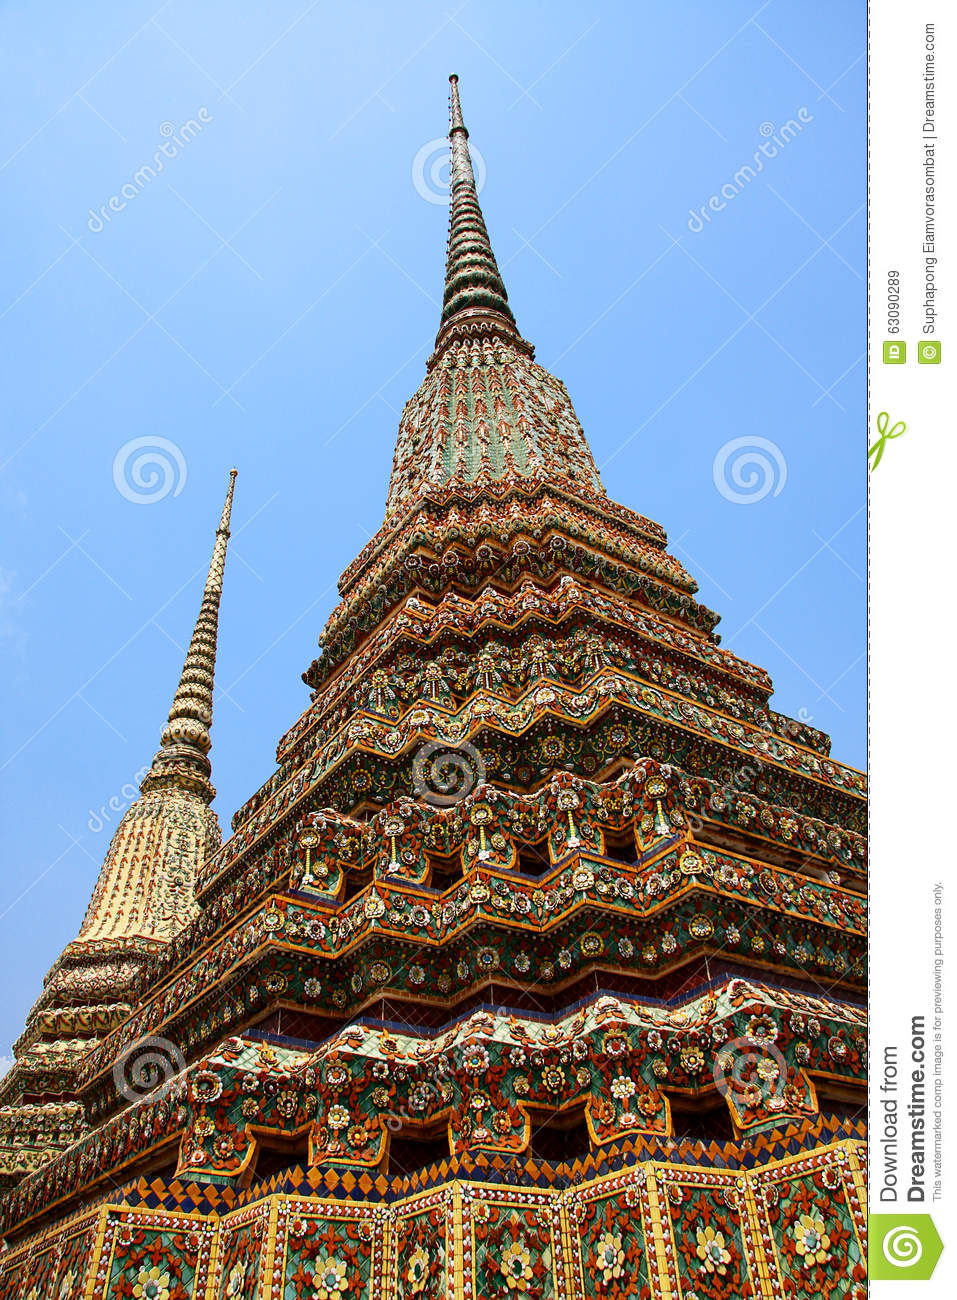 Download Watpho image stock. Image du asie, d0, temple, thailand - 63090289